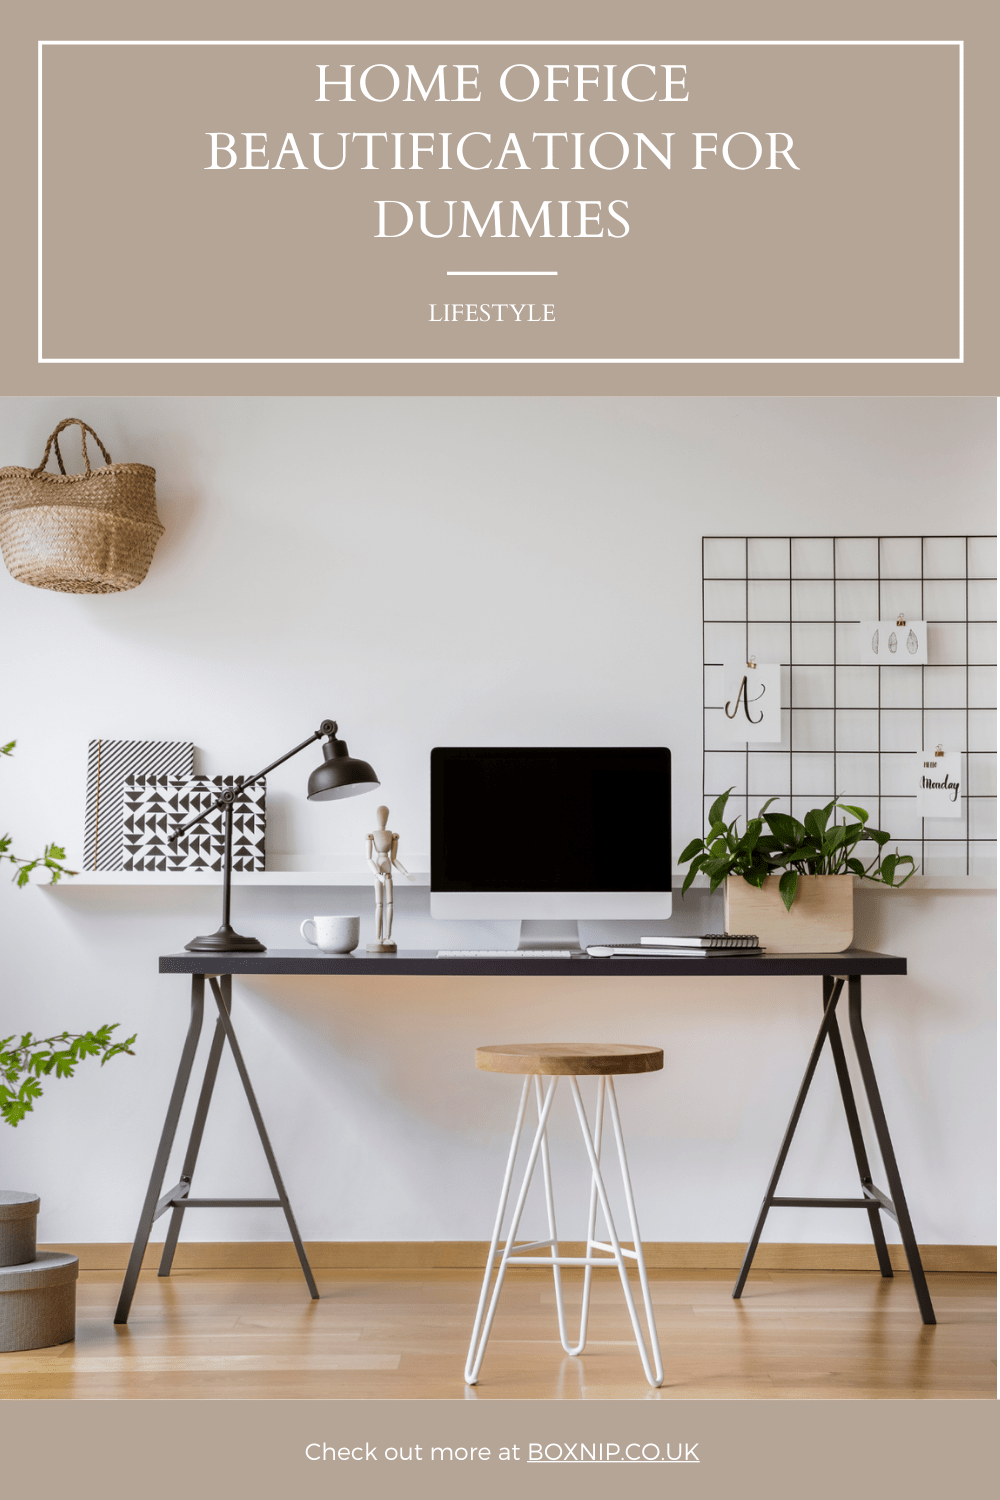 Home Office Beautification For Dummies